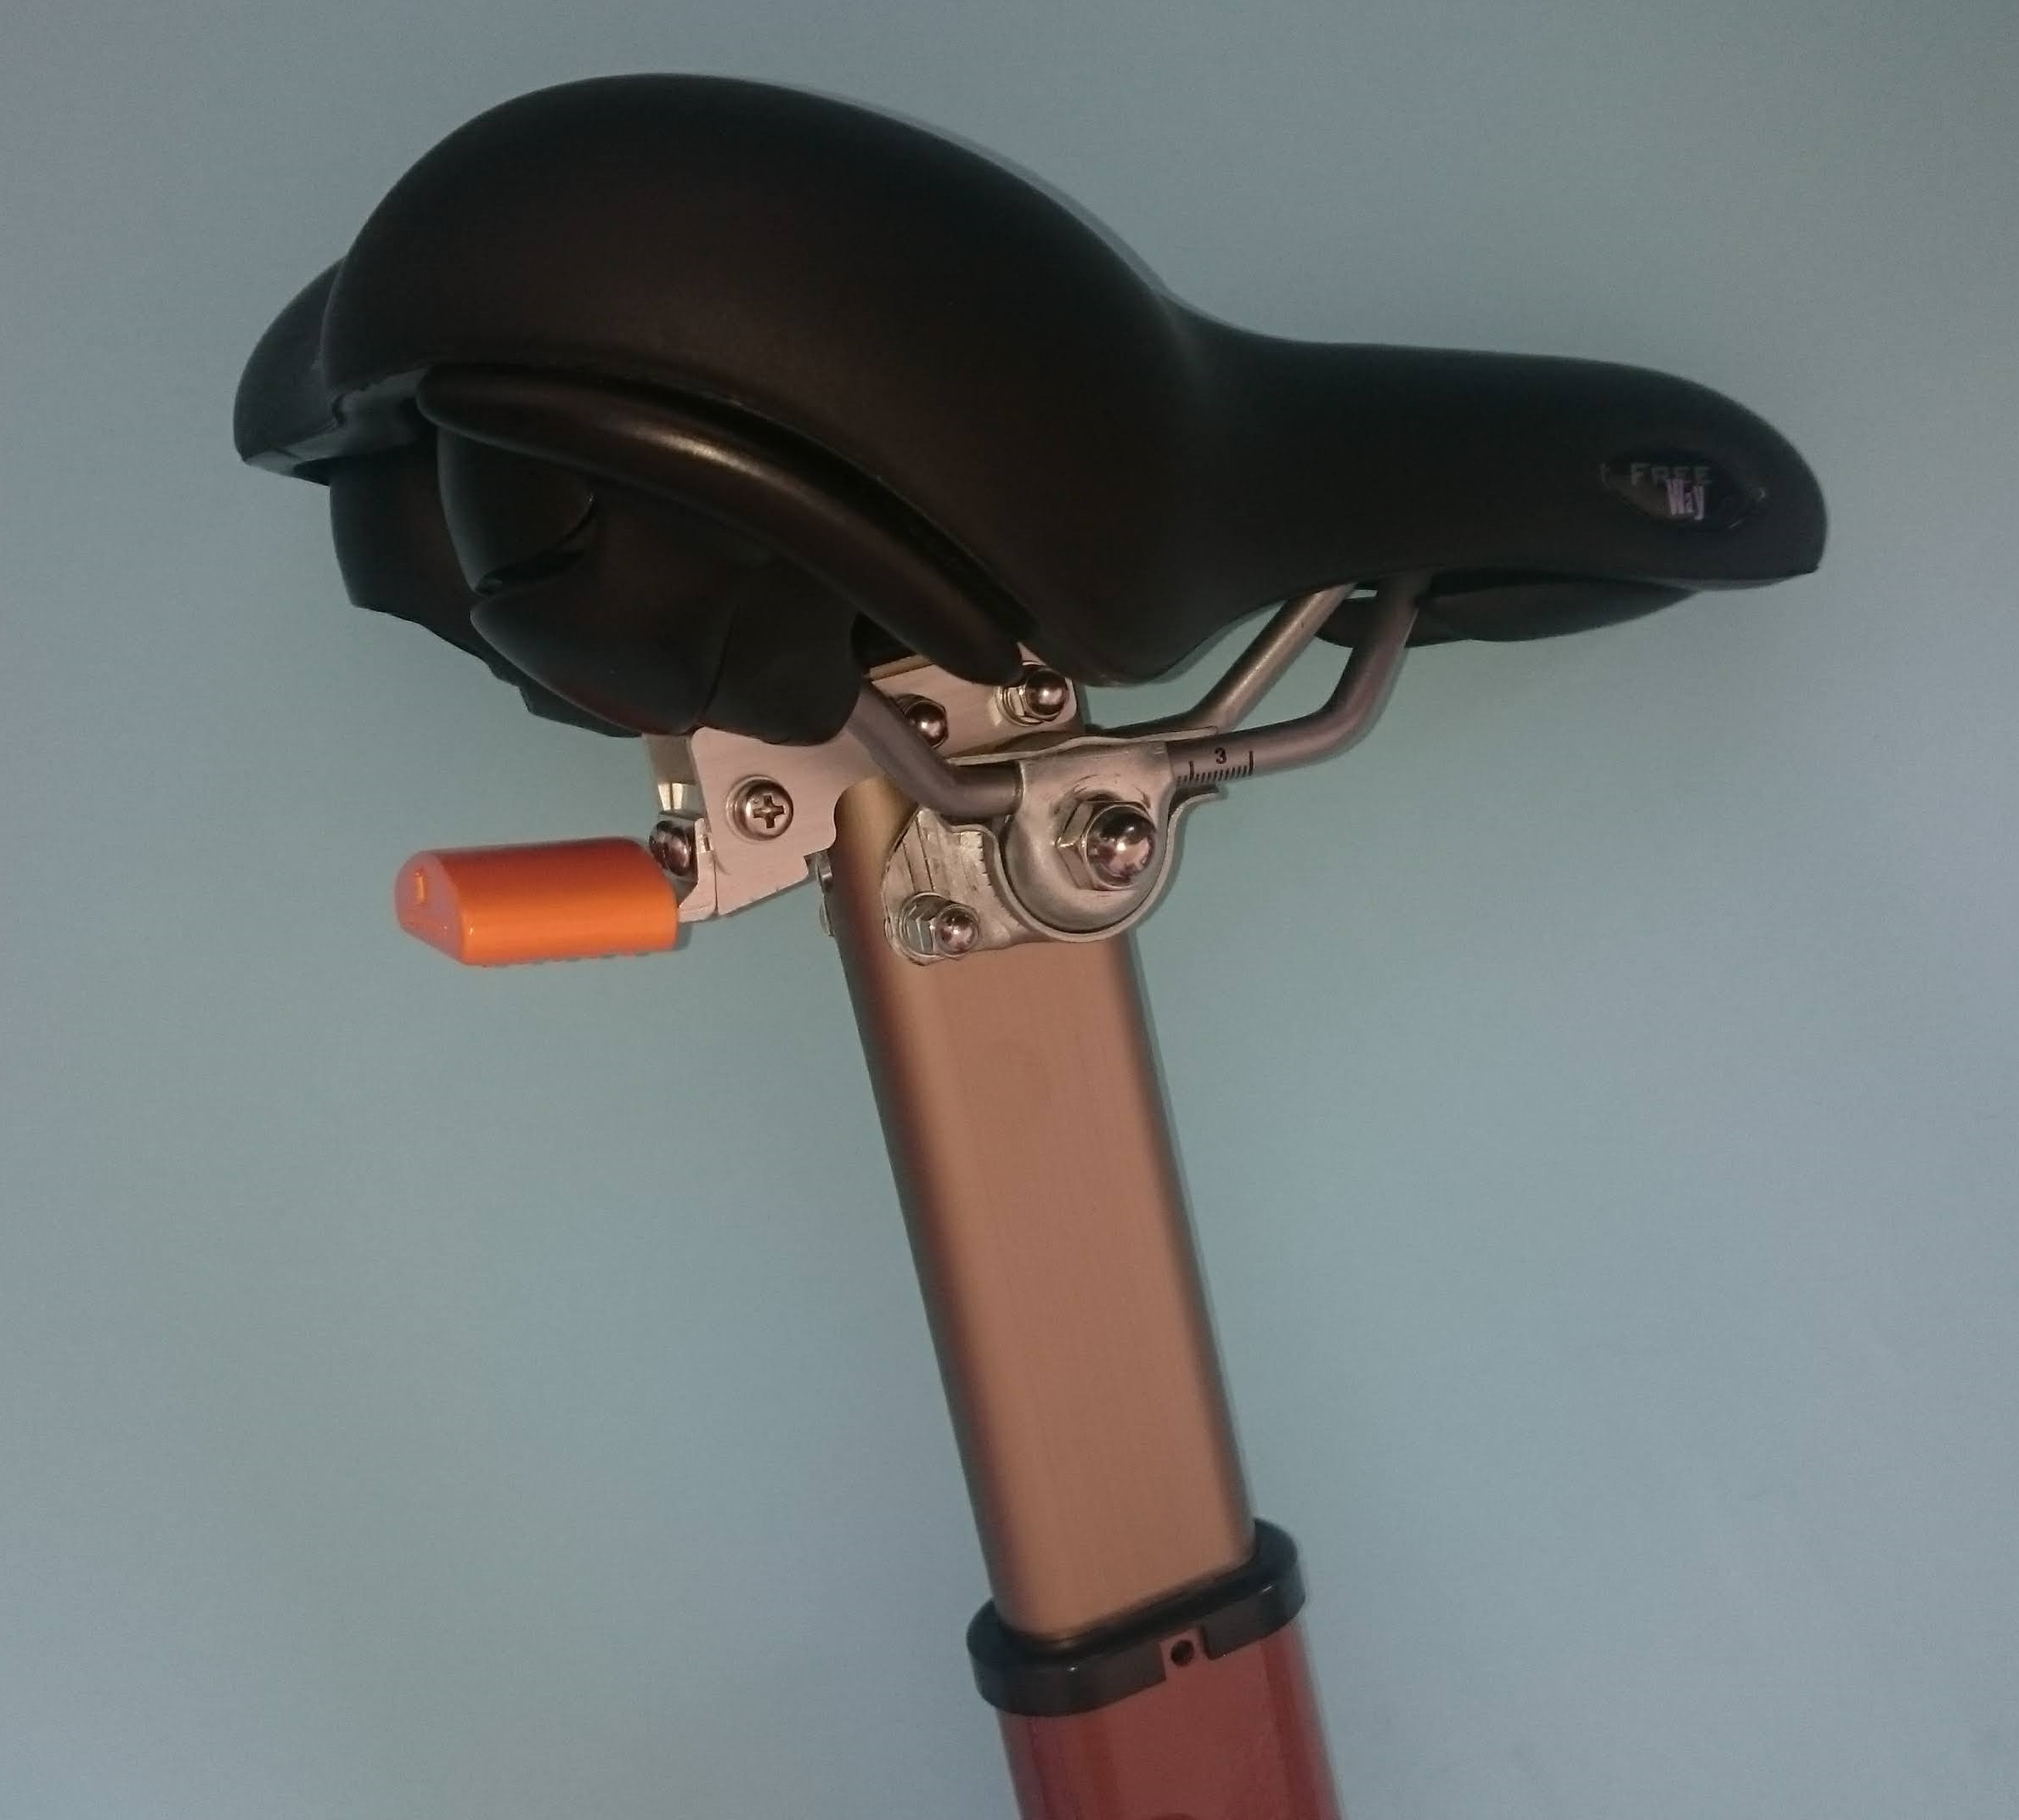 Walking stick and bicycle saddle which had a mechanical adjustment